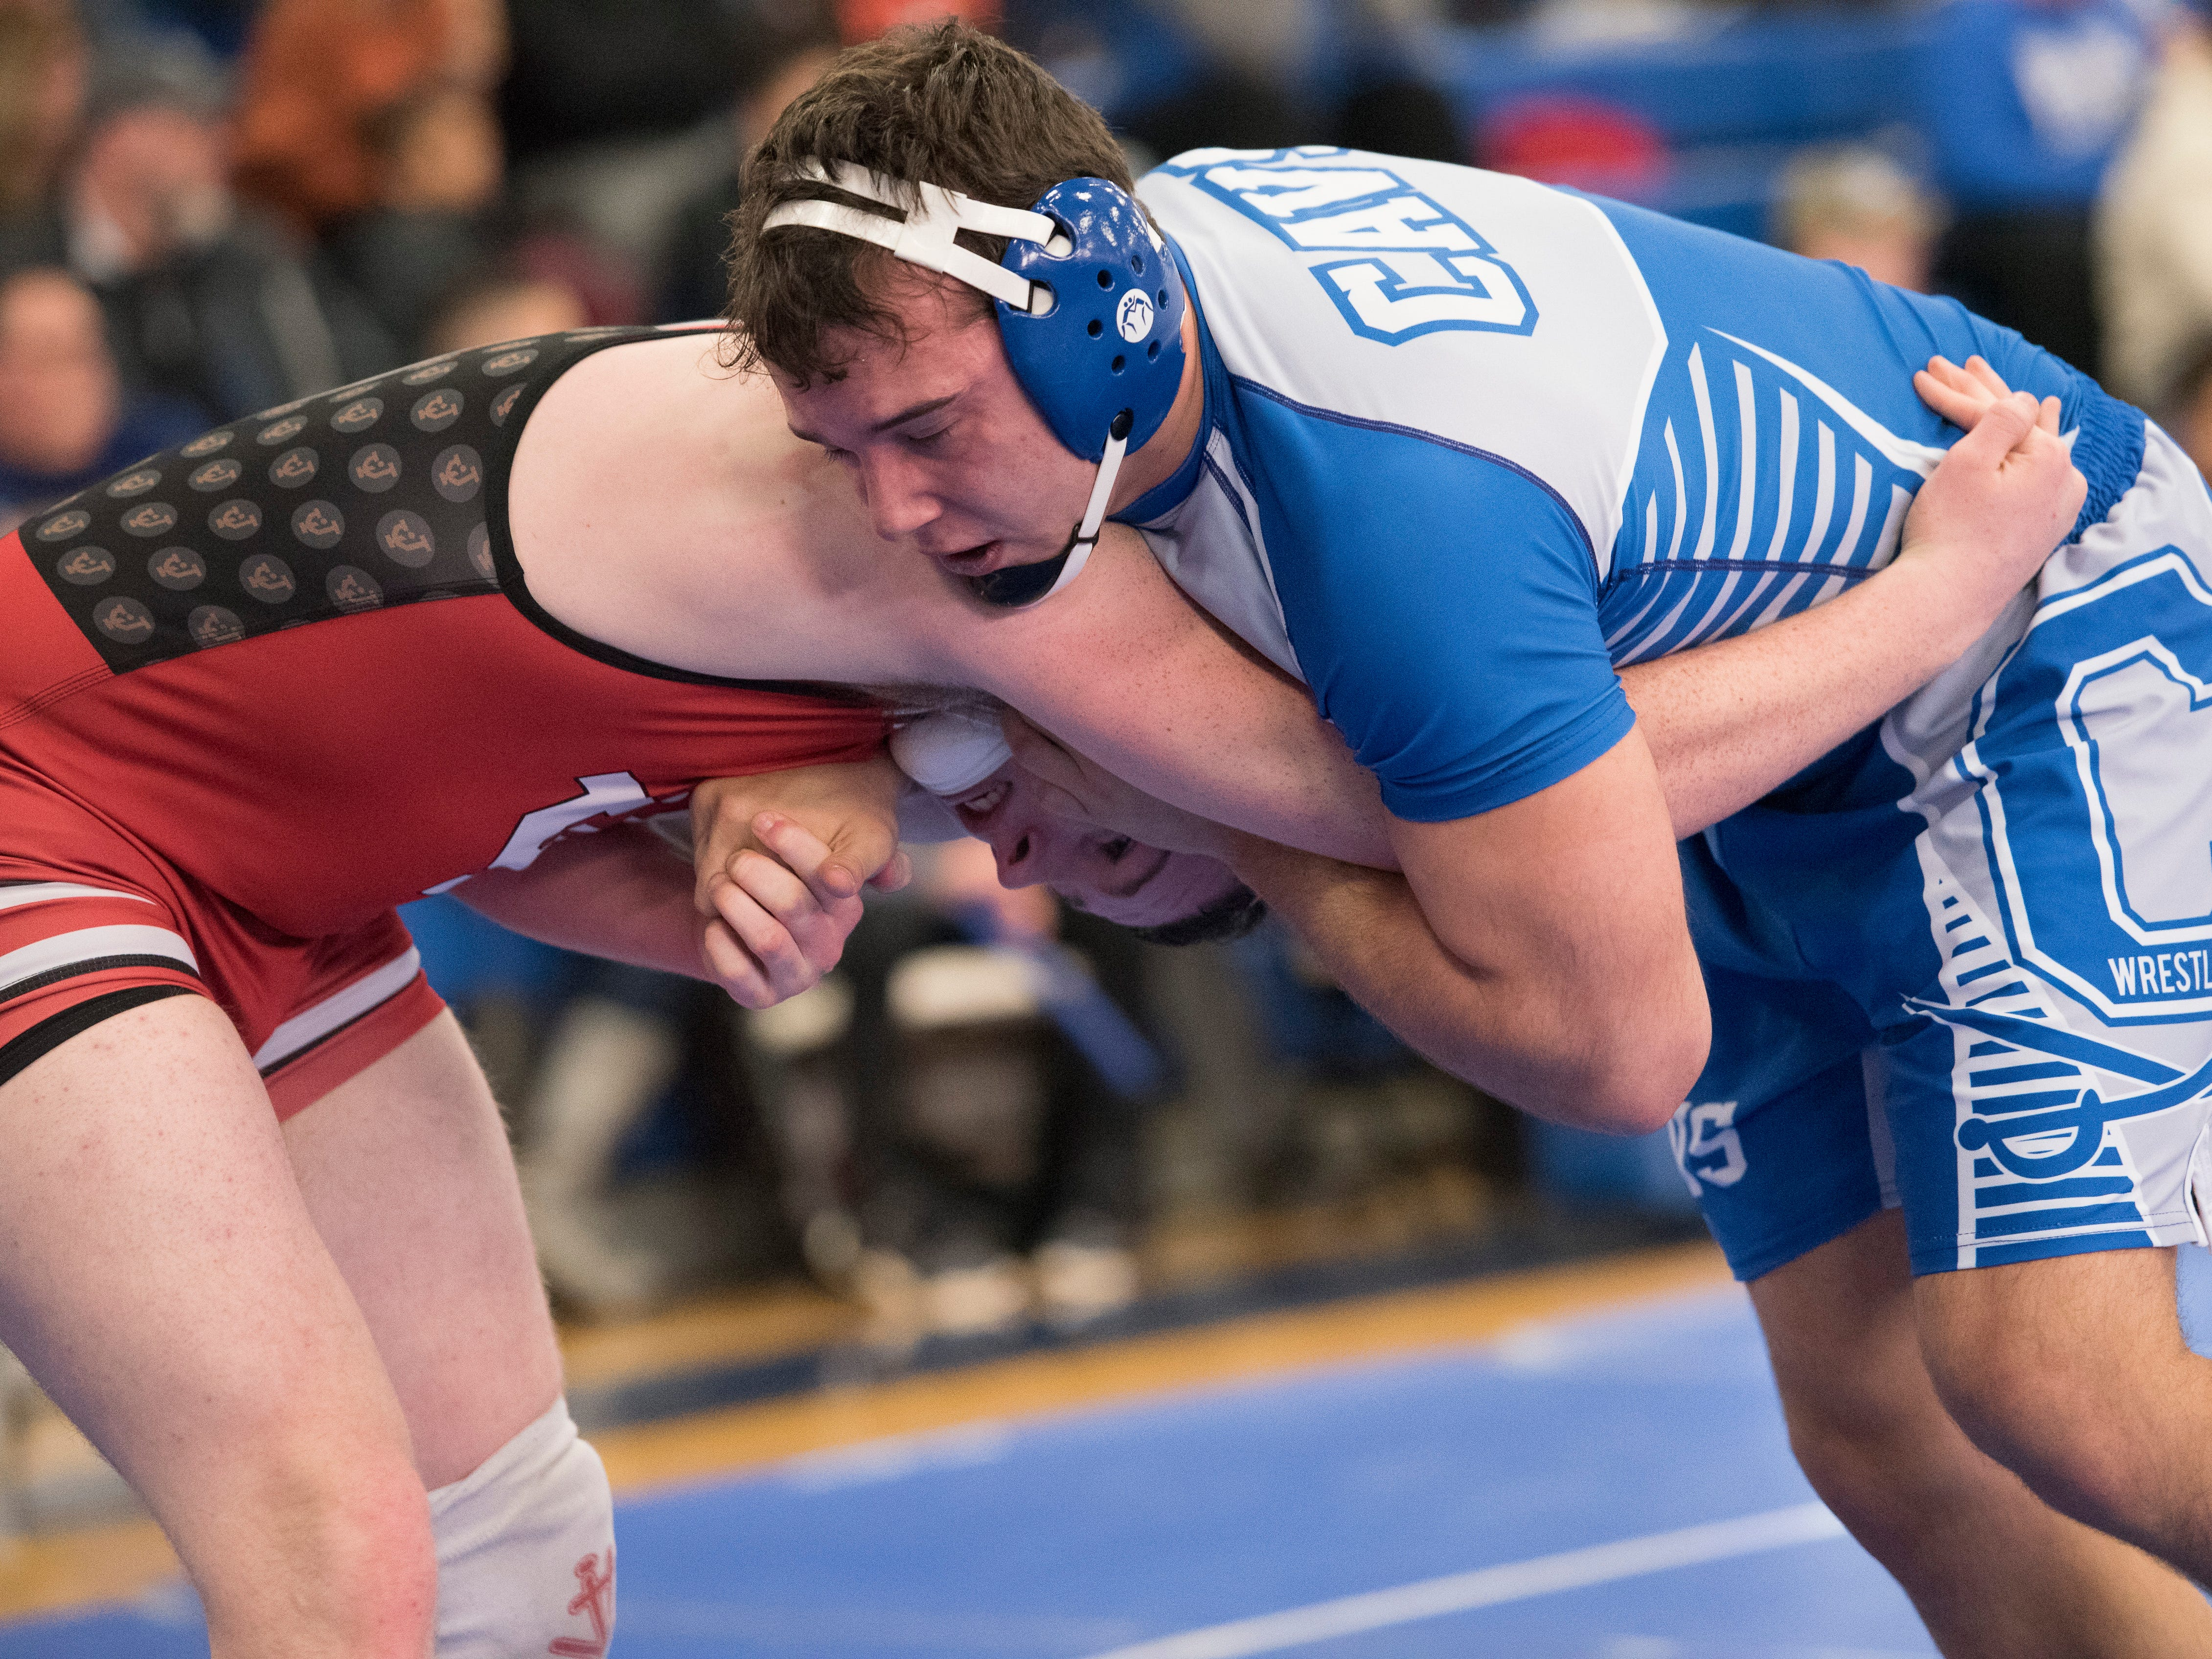 The Chillicothe Cavalier wrestlers finished in the 2019 FAC Wrestling Championships on Saturday, February 9, 2019, with senior Nick Erslan taking first place in the 195-pound weight class and Caleb Lake taking second in the 126-pound weight class.